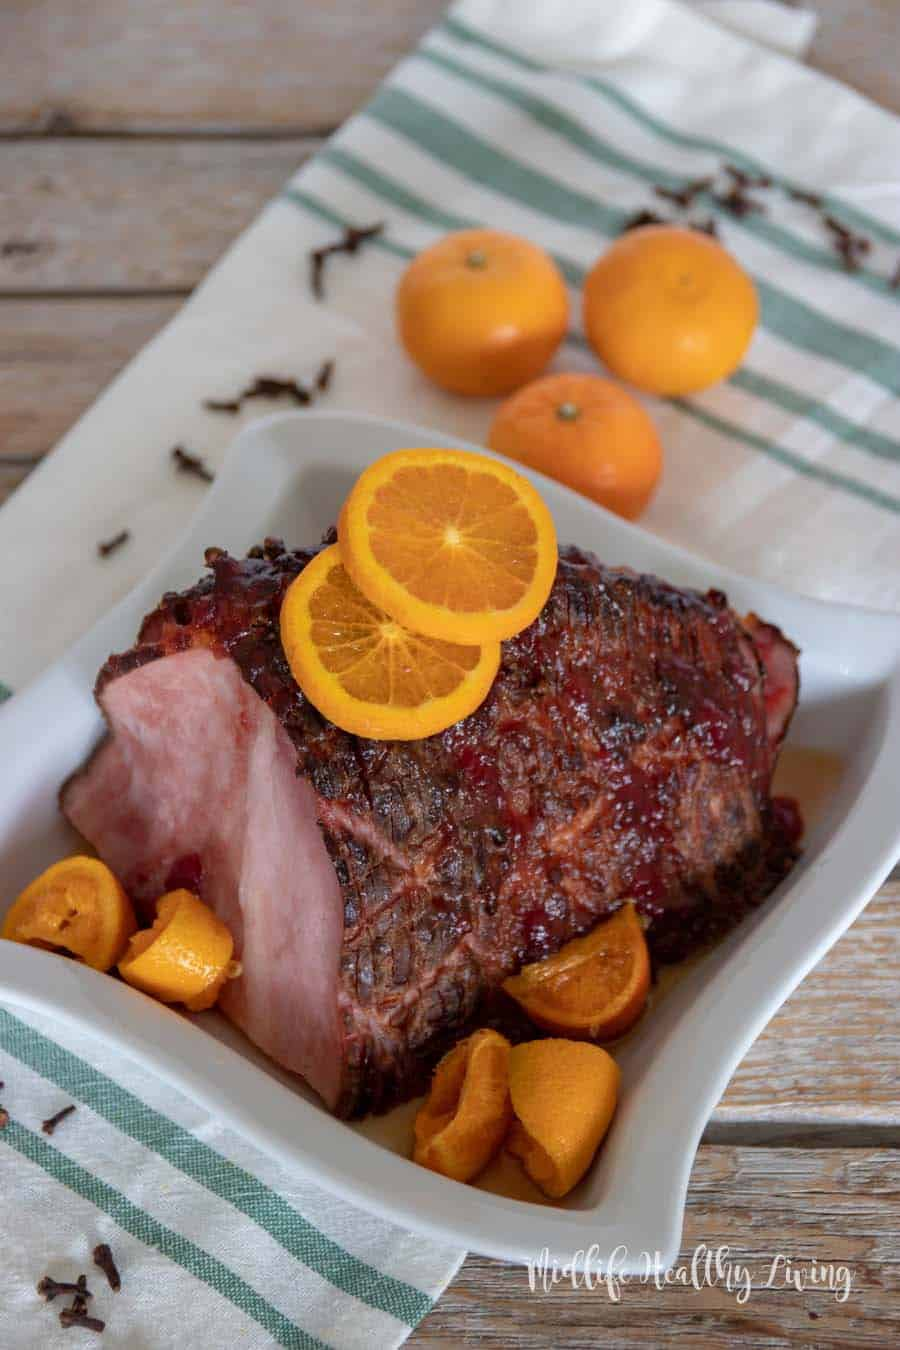 ThisWeight Watchers citrus and cranberry hamis a snapto make.There are 5 Weight Watchers FreestyleSmart Pointsin each serving of this delicious ham.